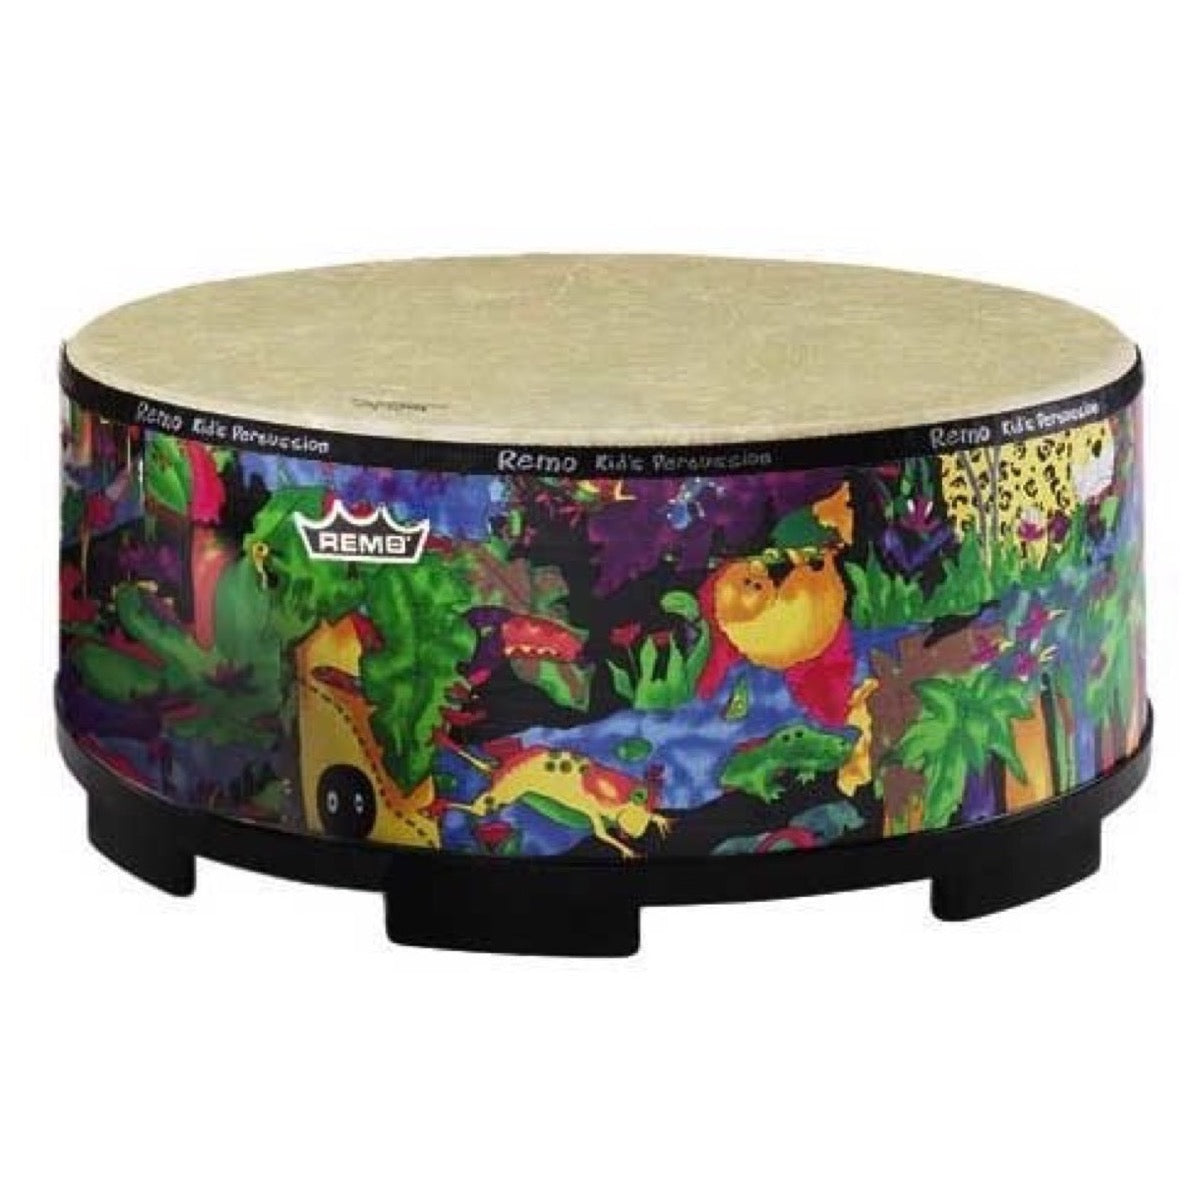 Remo Kids Percussion Gathering Drum, KD-5816-01, 16 Inch